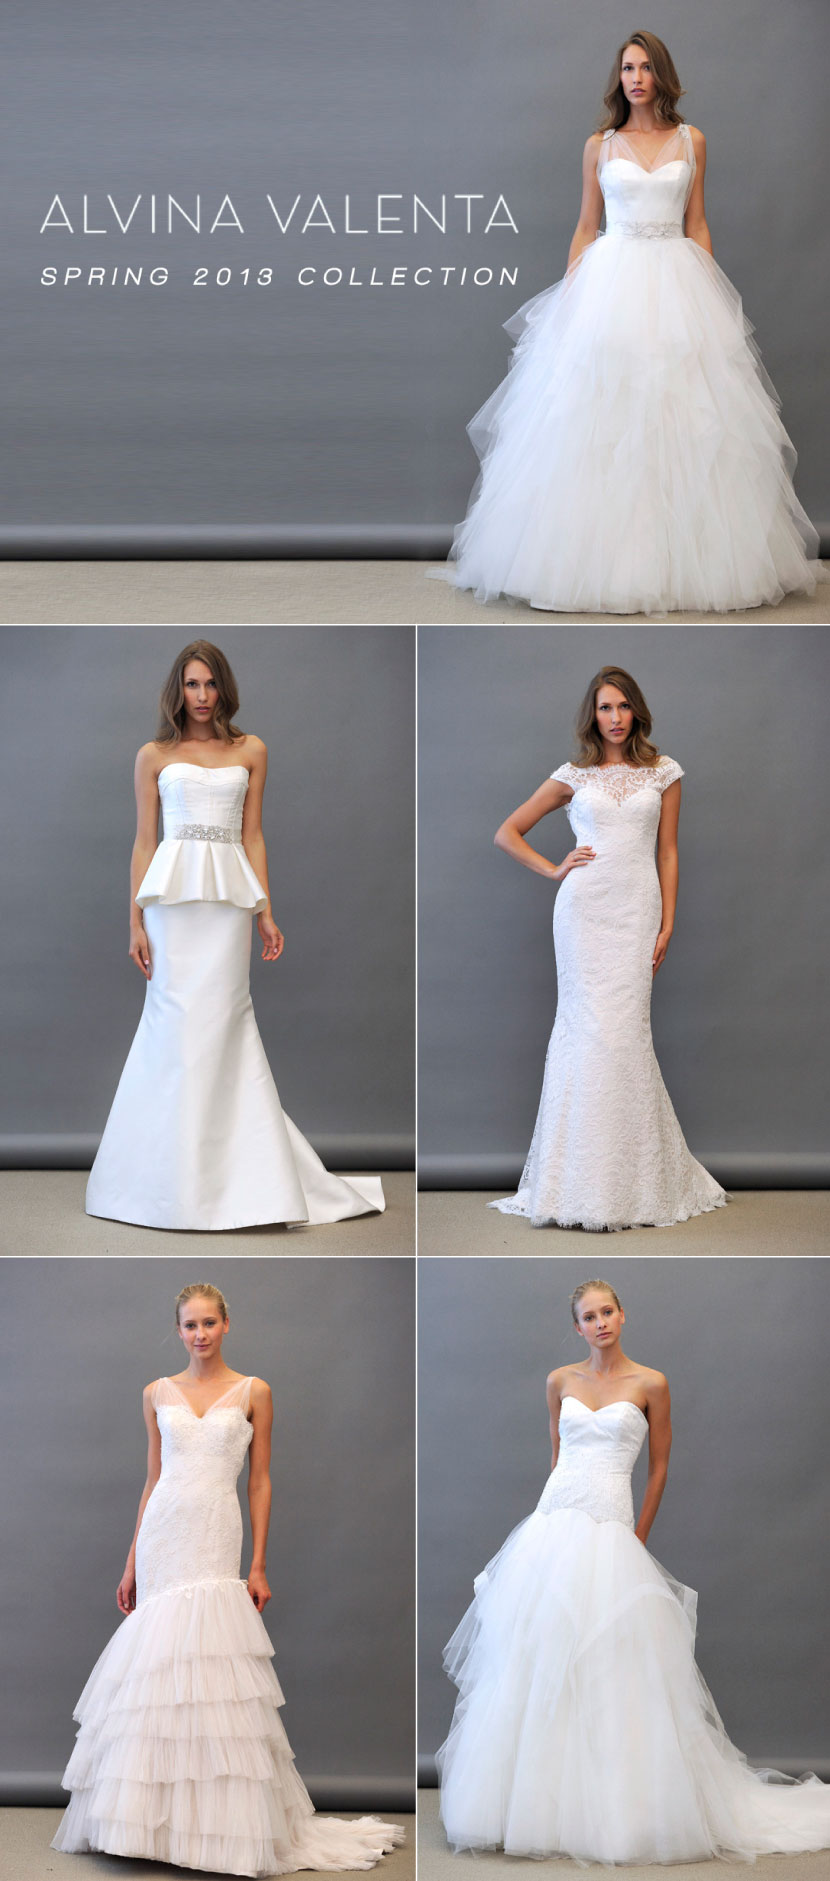 Alvina Valenta Spring 2013 wedding gown collection